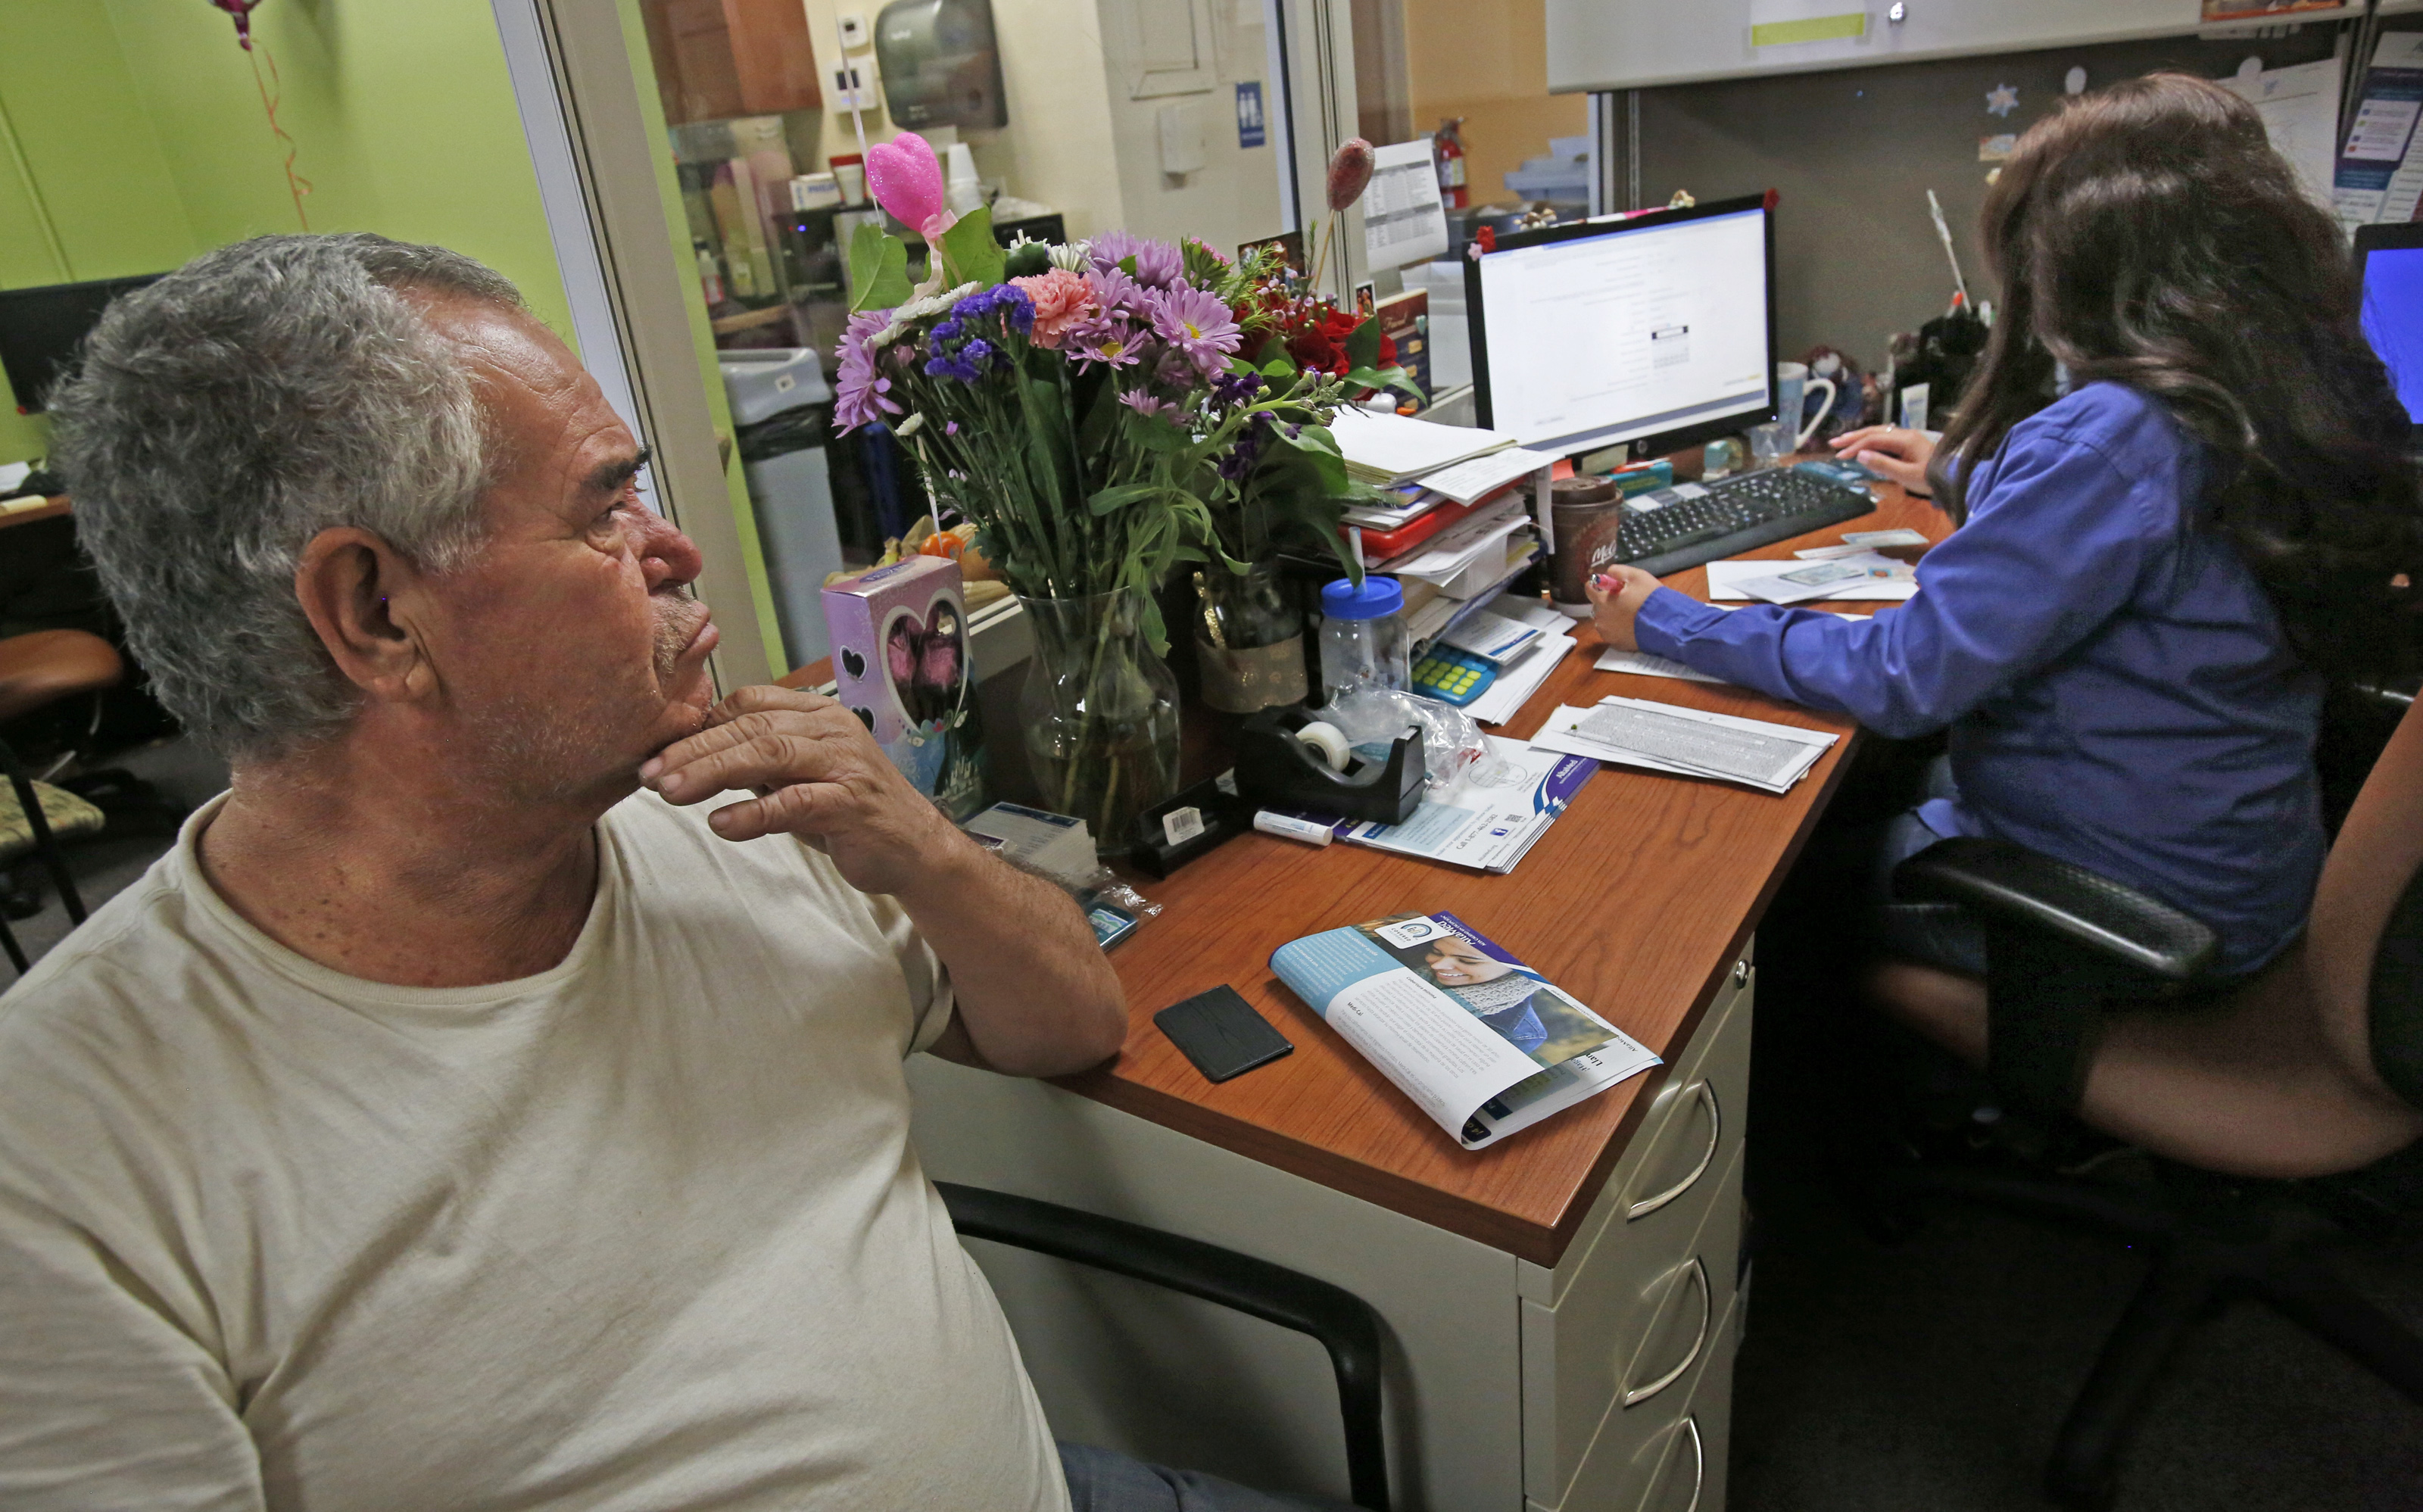 LOS ANGELES, CA. - FEBRUARY 14, 2015: Jose Mora, 62, signs up for Obamacare with Kristie Navarro, ri